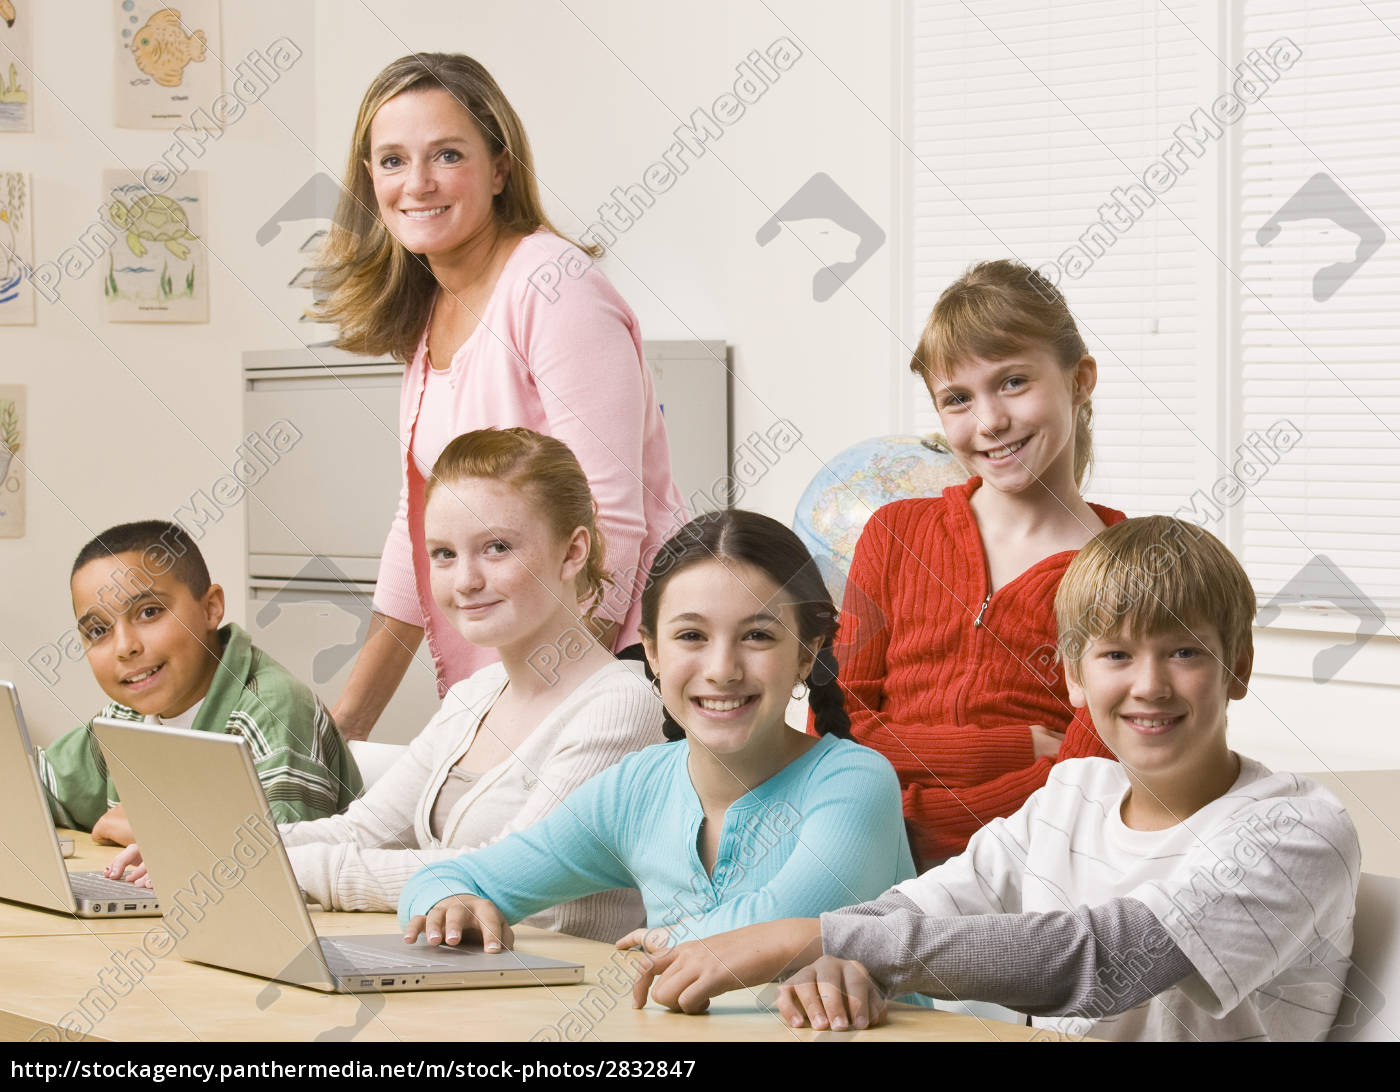 students, working, on, laptops - 2832847